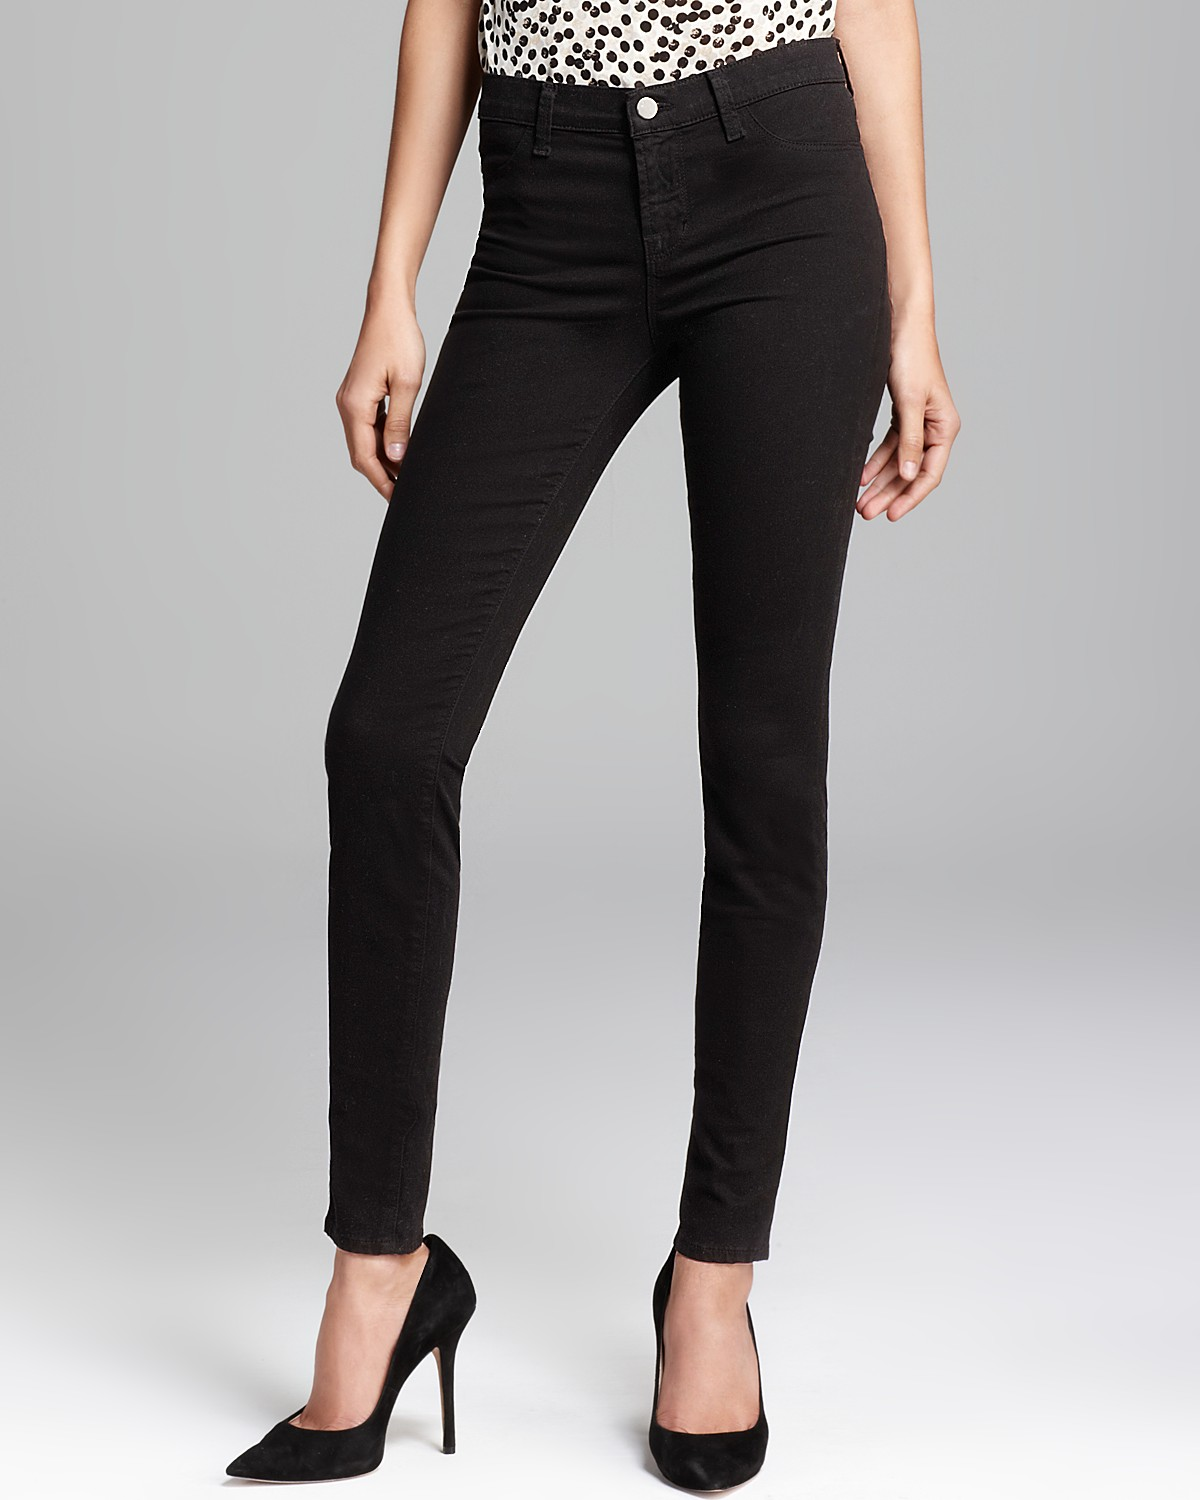 J Brand Jeans - Luxe Sateen 485 Super Skinny in Black | Bloomingdale's